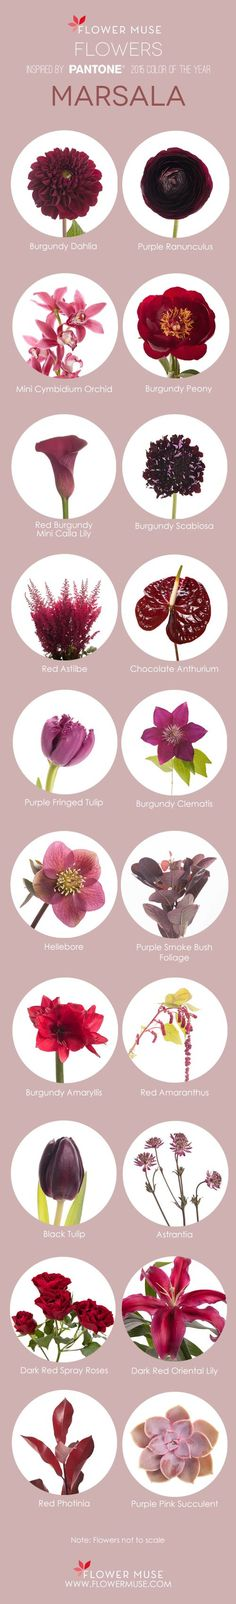 2015 Color of The Year Marsala Flower Inspiration - on Flower Muse Blog: http://www.flowermuse.com/blog/marsala-flowers/                                                                                                                                                                                 More